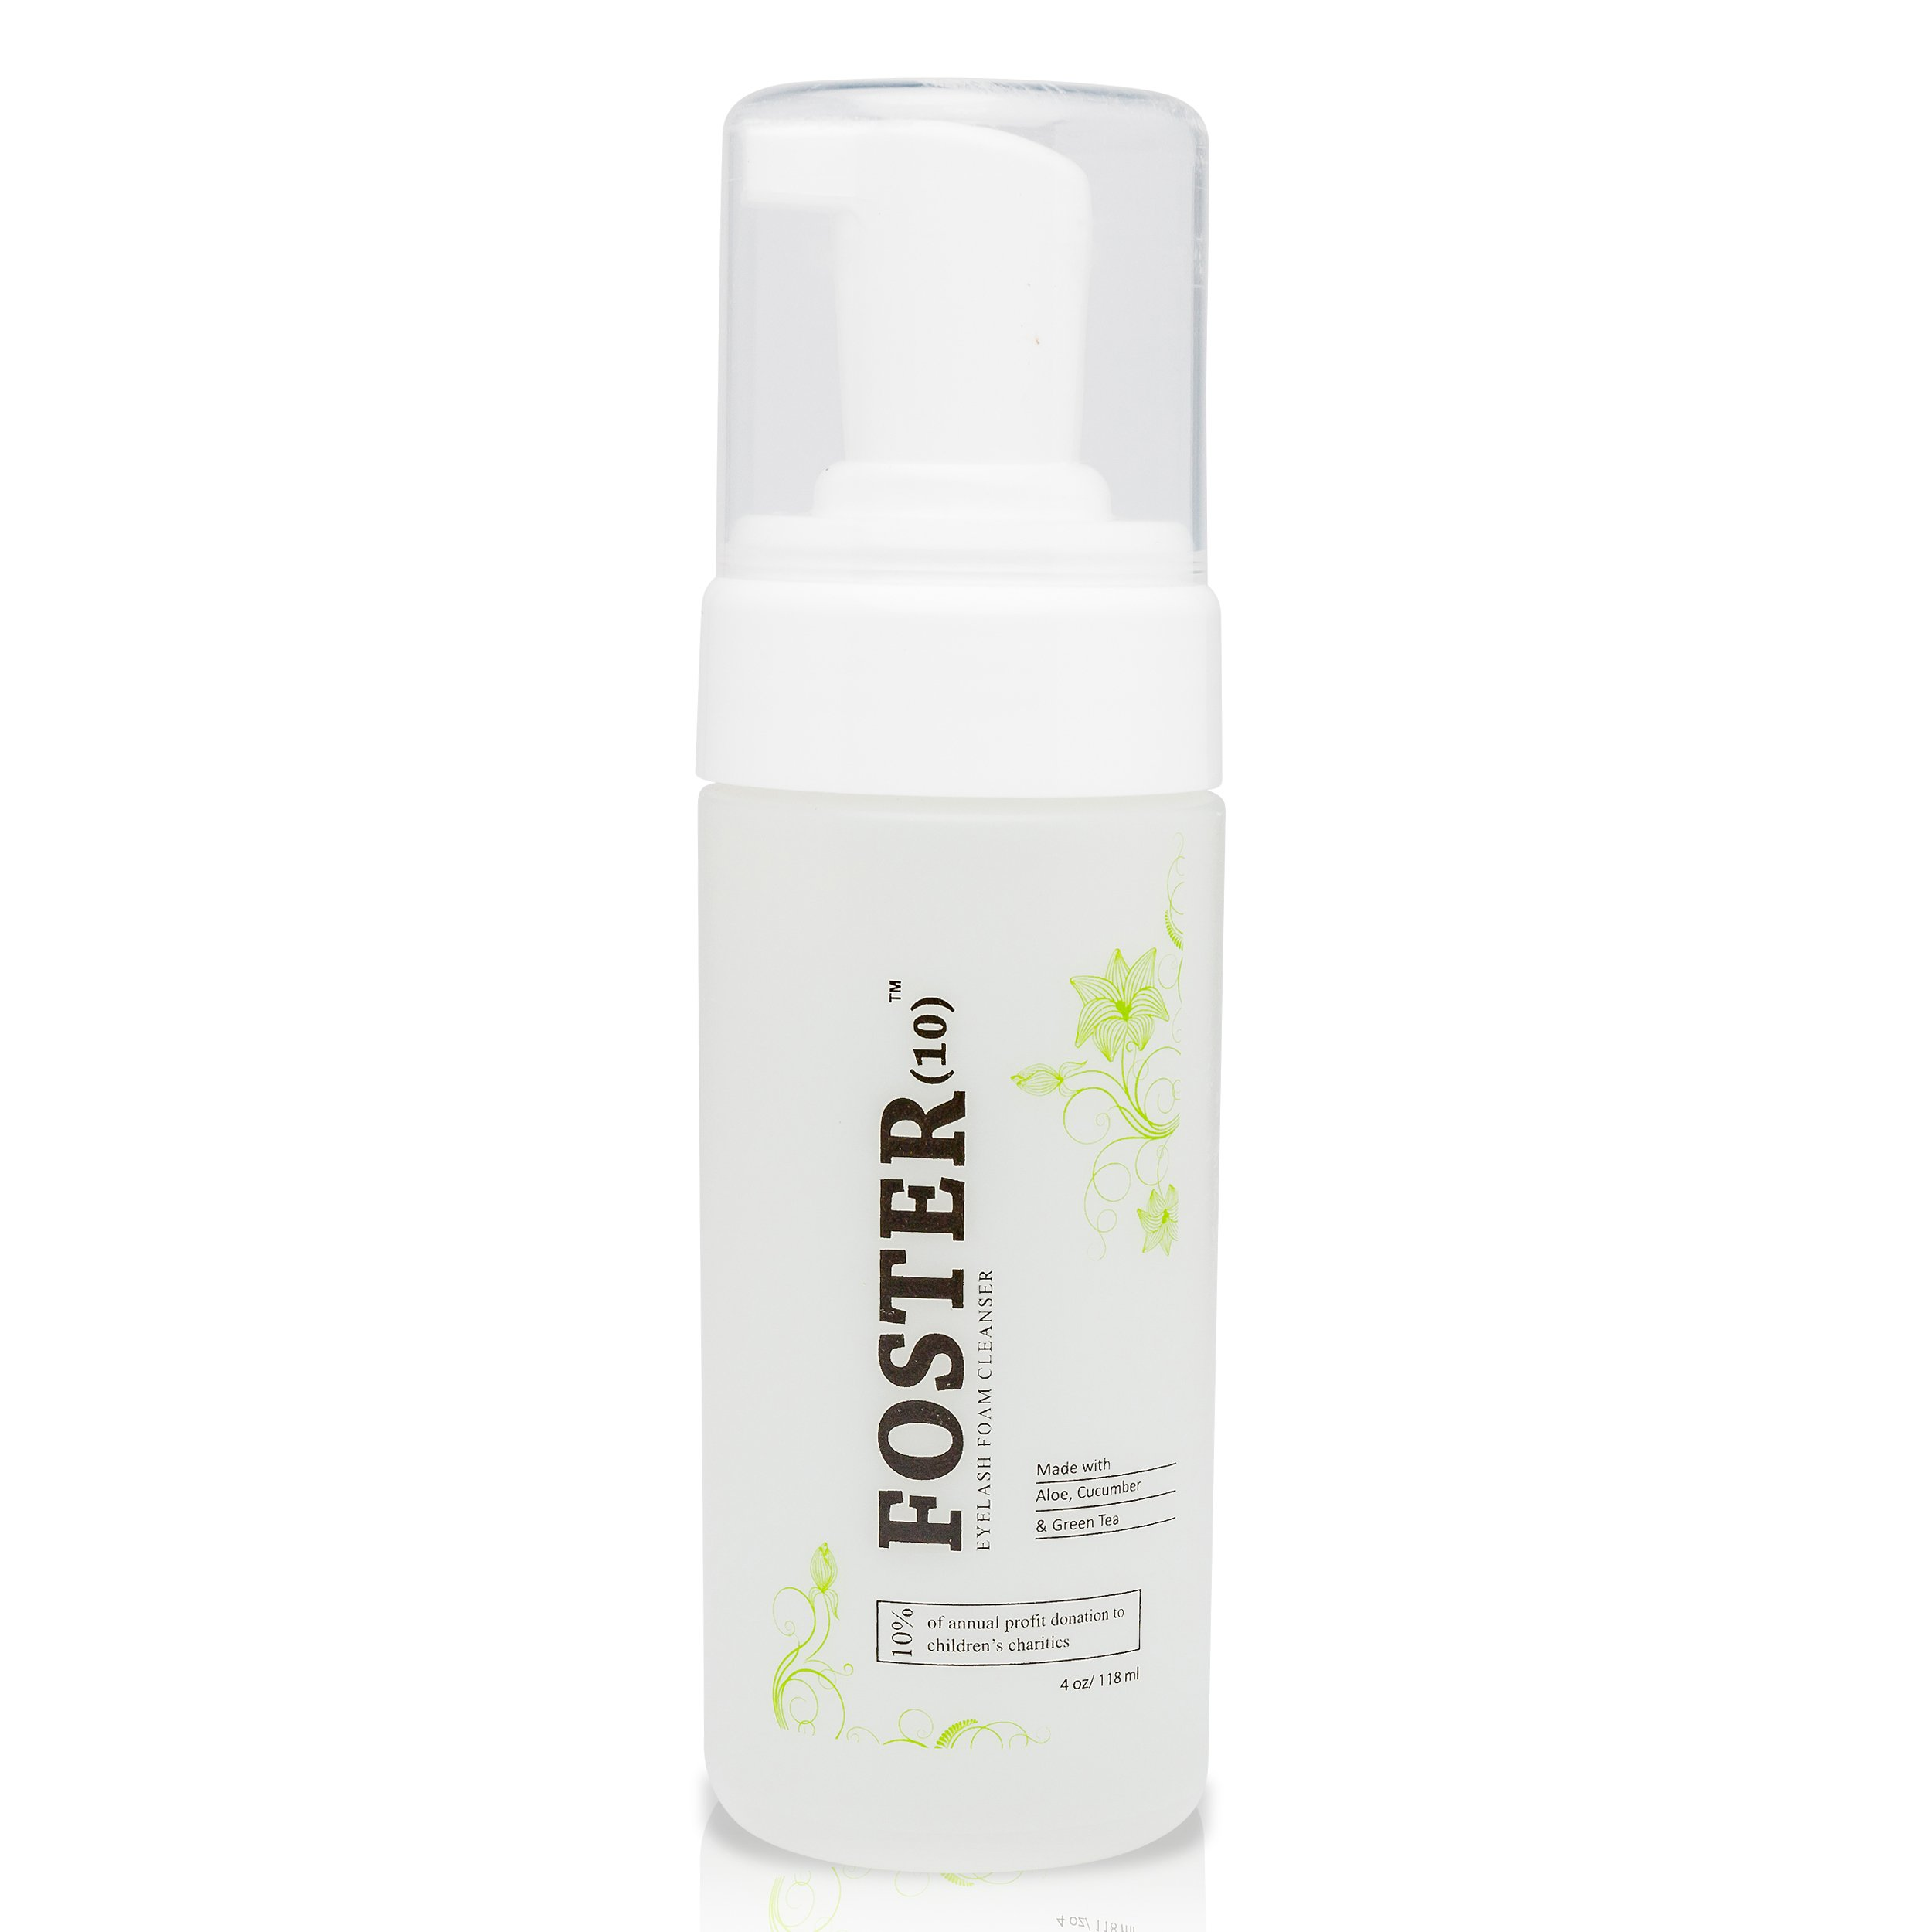 Foster(10) - Foster(10) Eyelash Extension Cleanser -Foaming, Safe for Daily use and is Oil Free, Gentle and made with Pomegranate, Chamomile, Green Tea, Cucumber Extracts, Cruelty Free